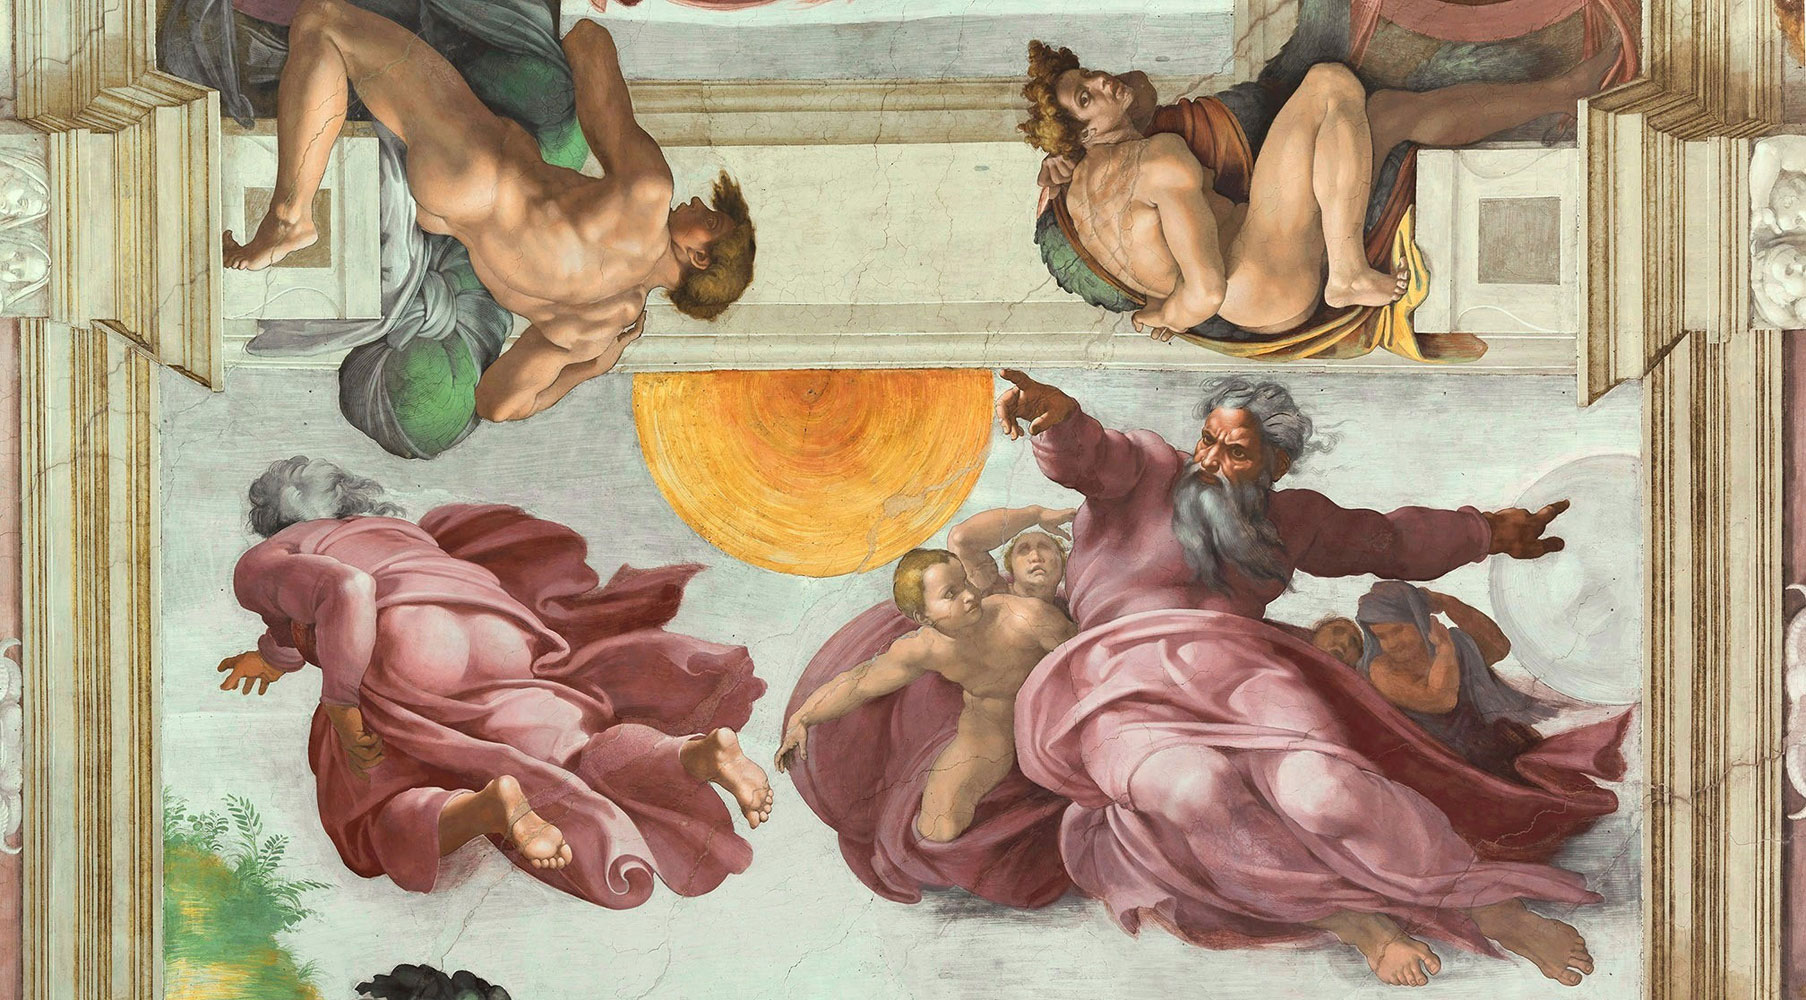 The Creation of the Sun and the Moon by Michelangelo